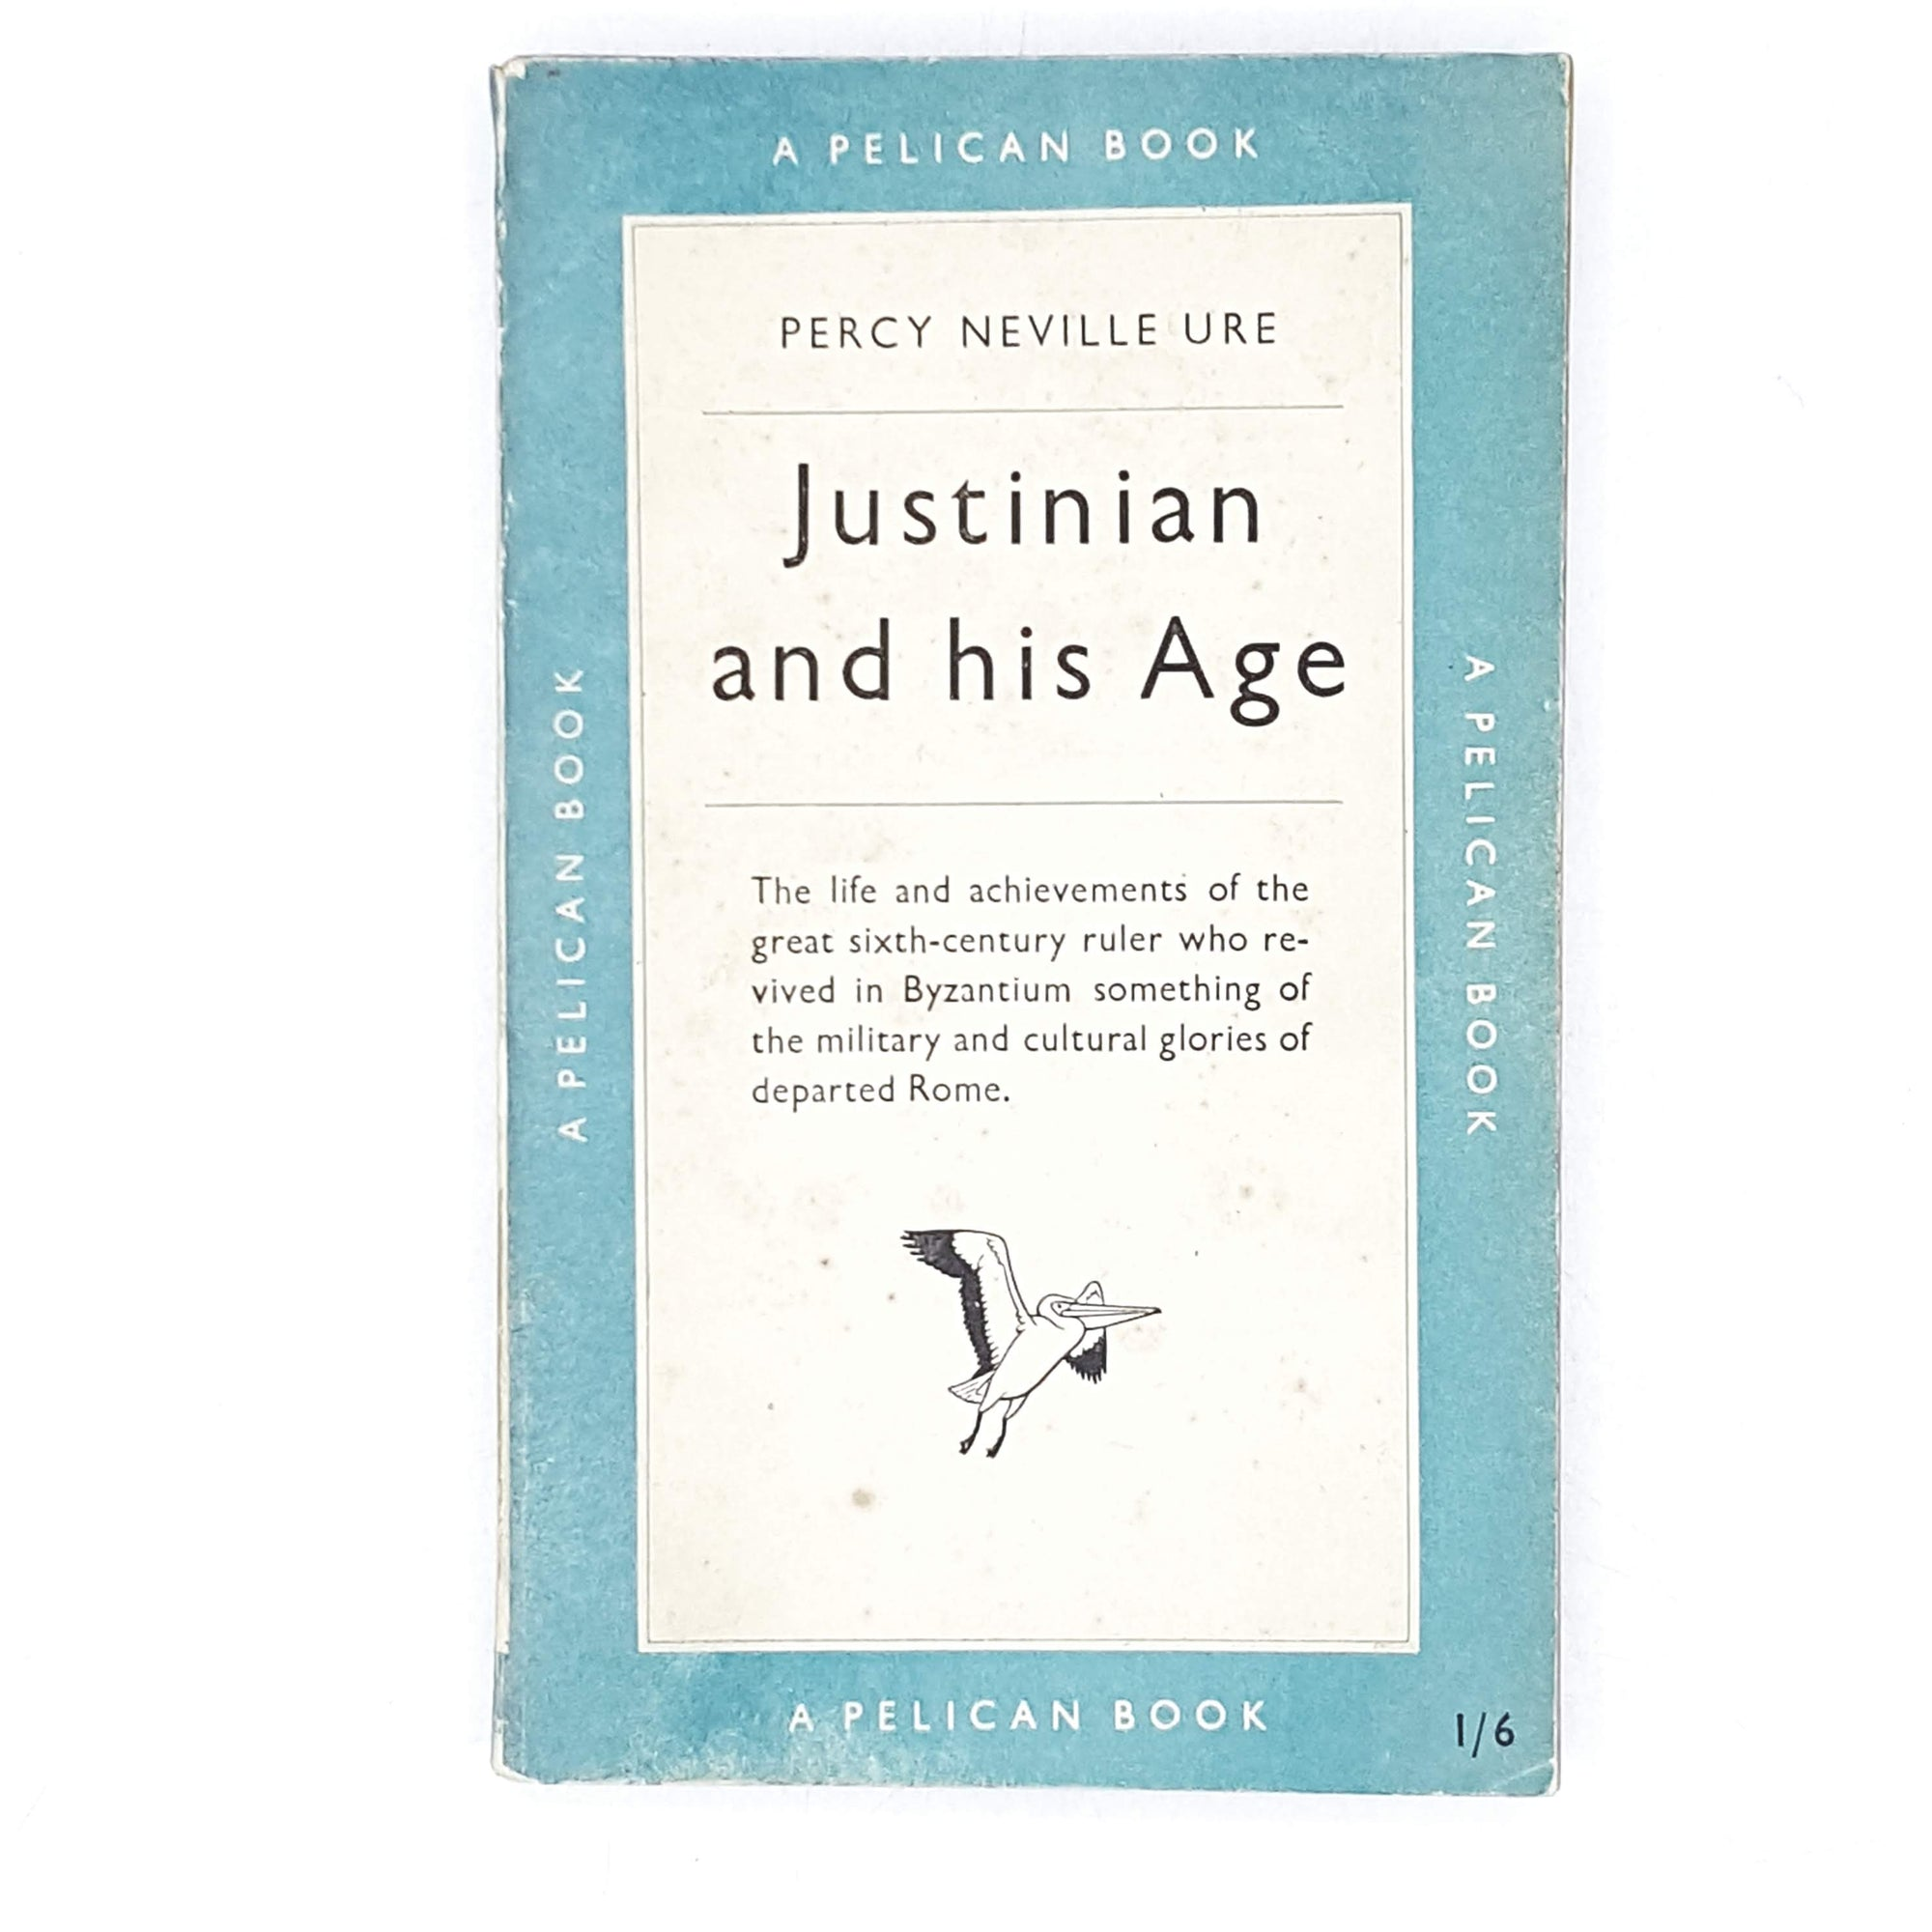 Vintage Pelican: Justinian and His Age by Percy Neville Ure 1951